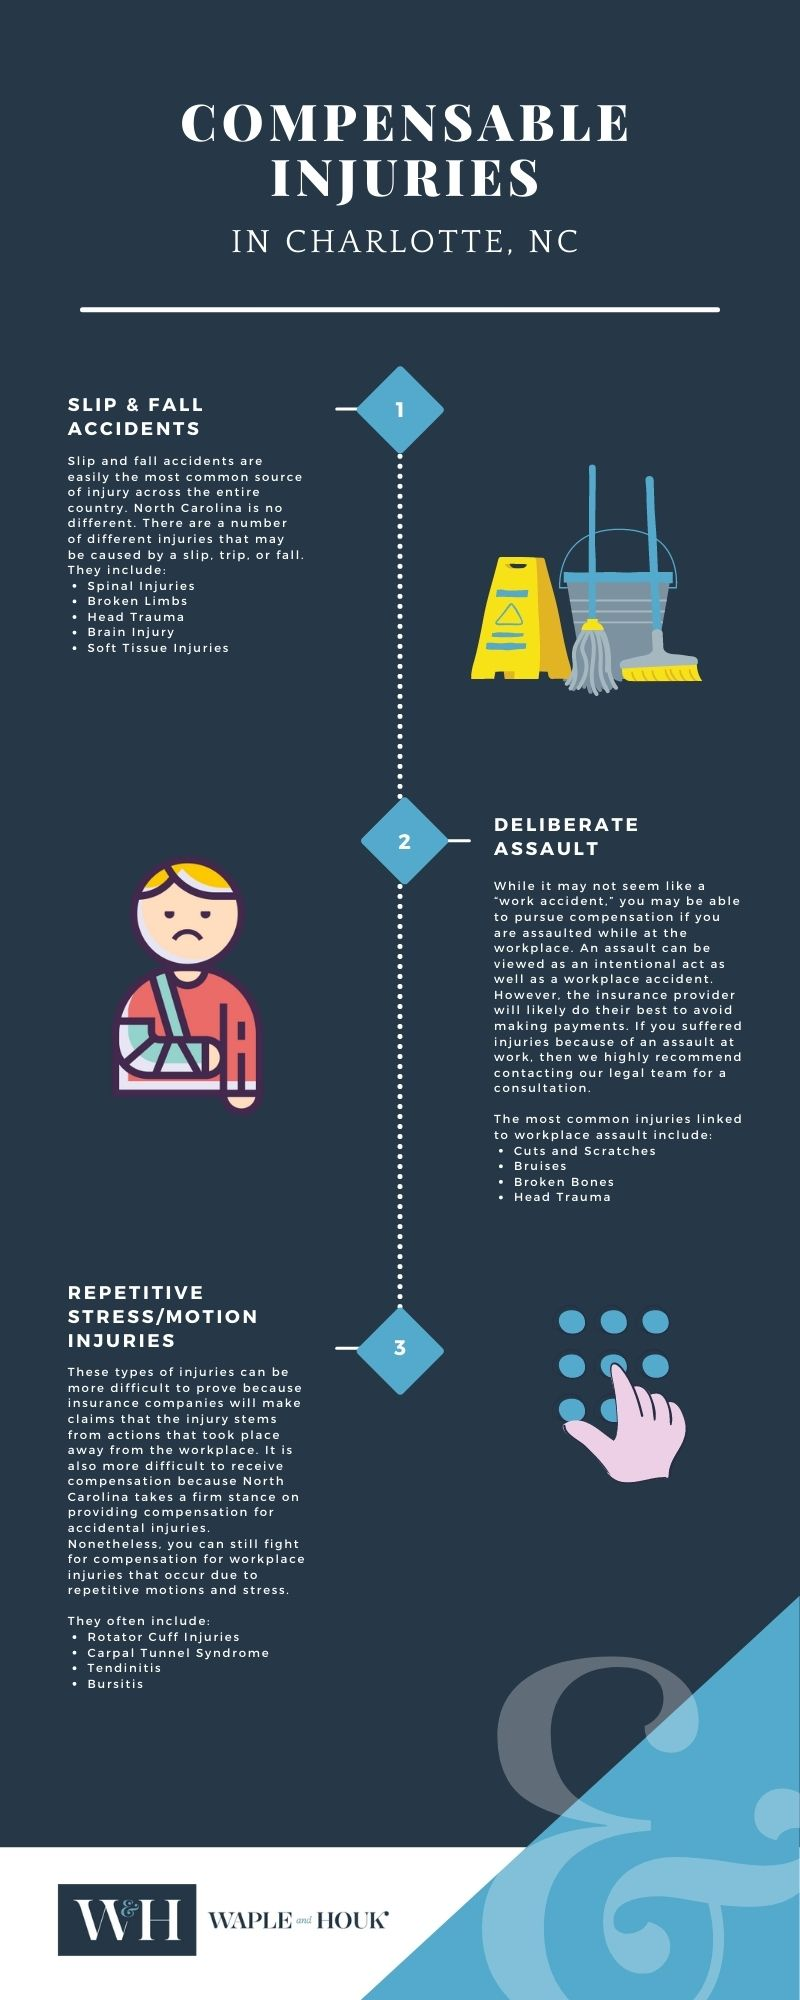 Charlotte Compensable Injuries Infographic